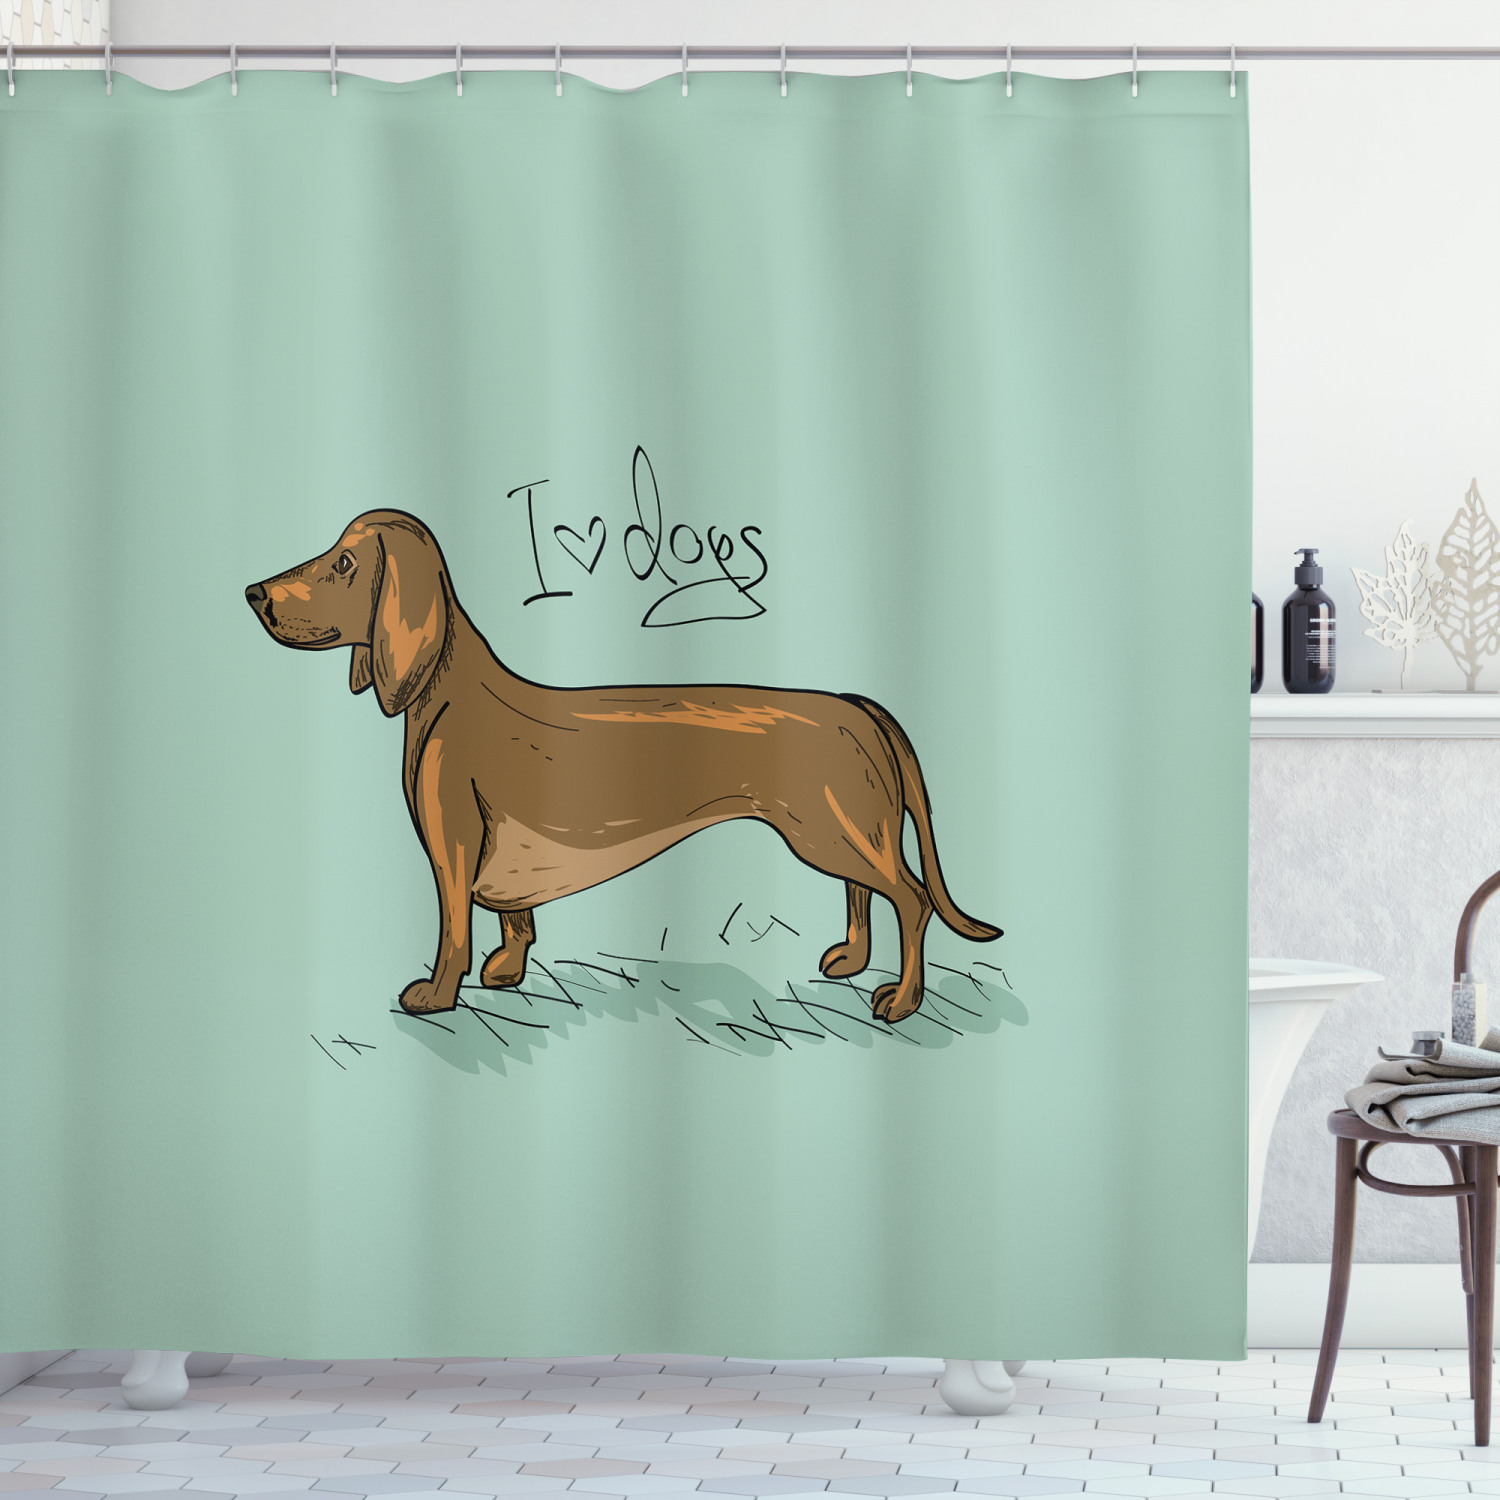 dachshund shower curtain dachshund puppy on an abstract turquoise background pure breed animal fabric bathroom set with hooks turquoise brown